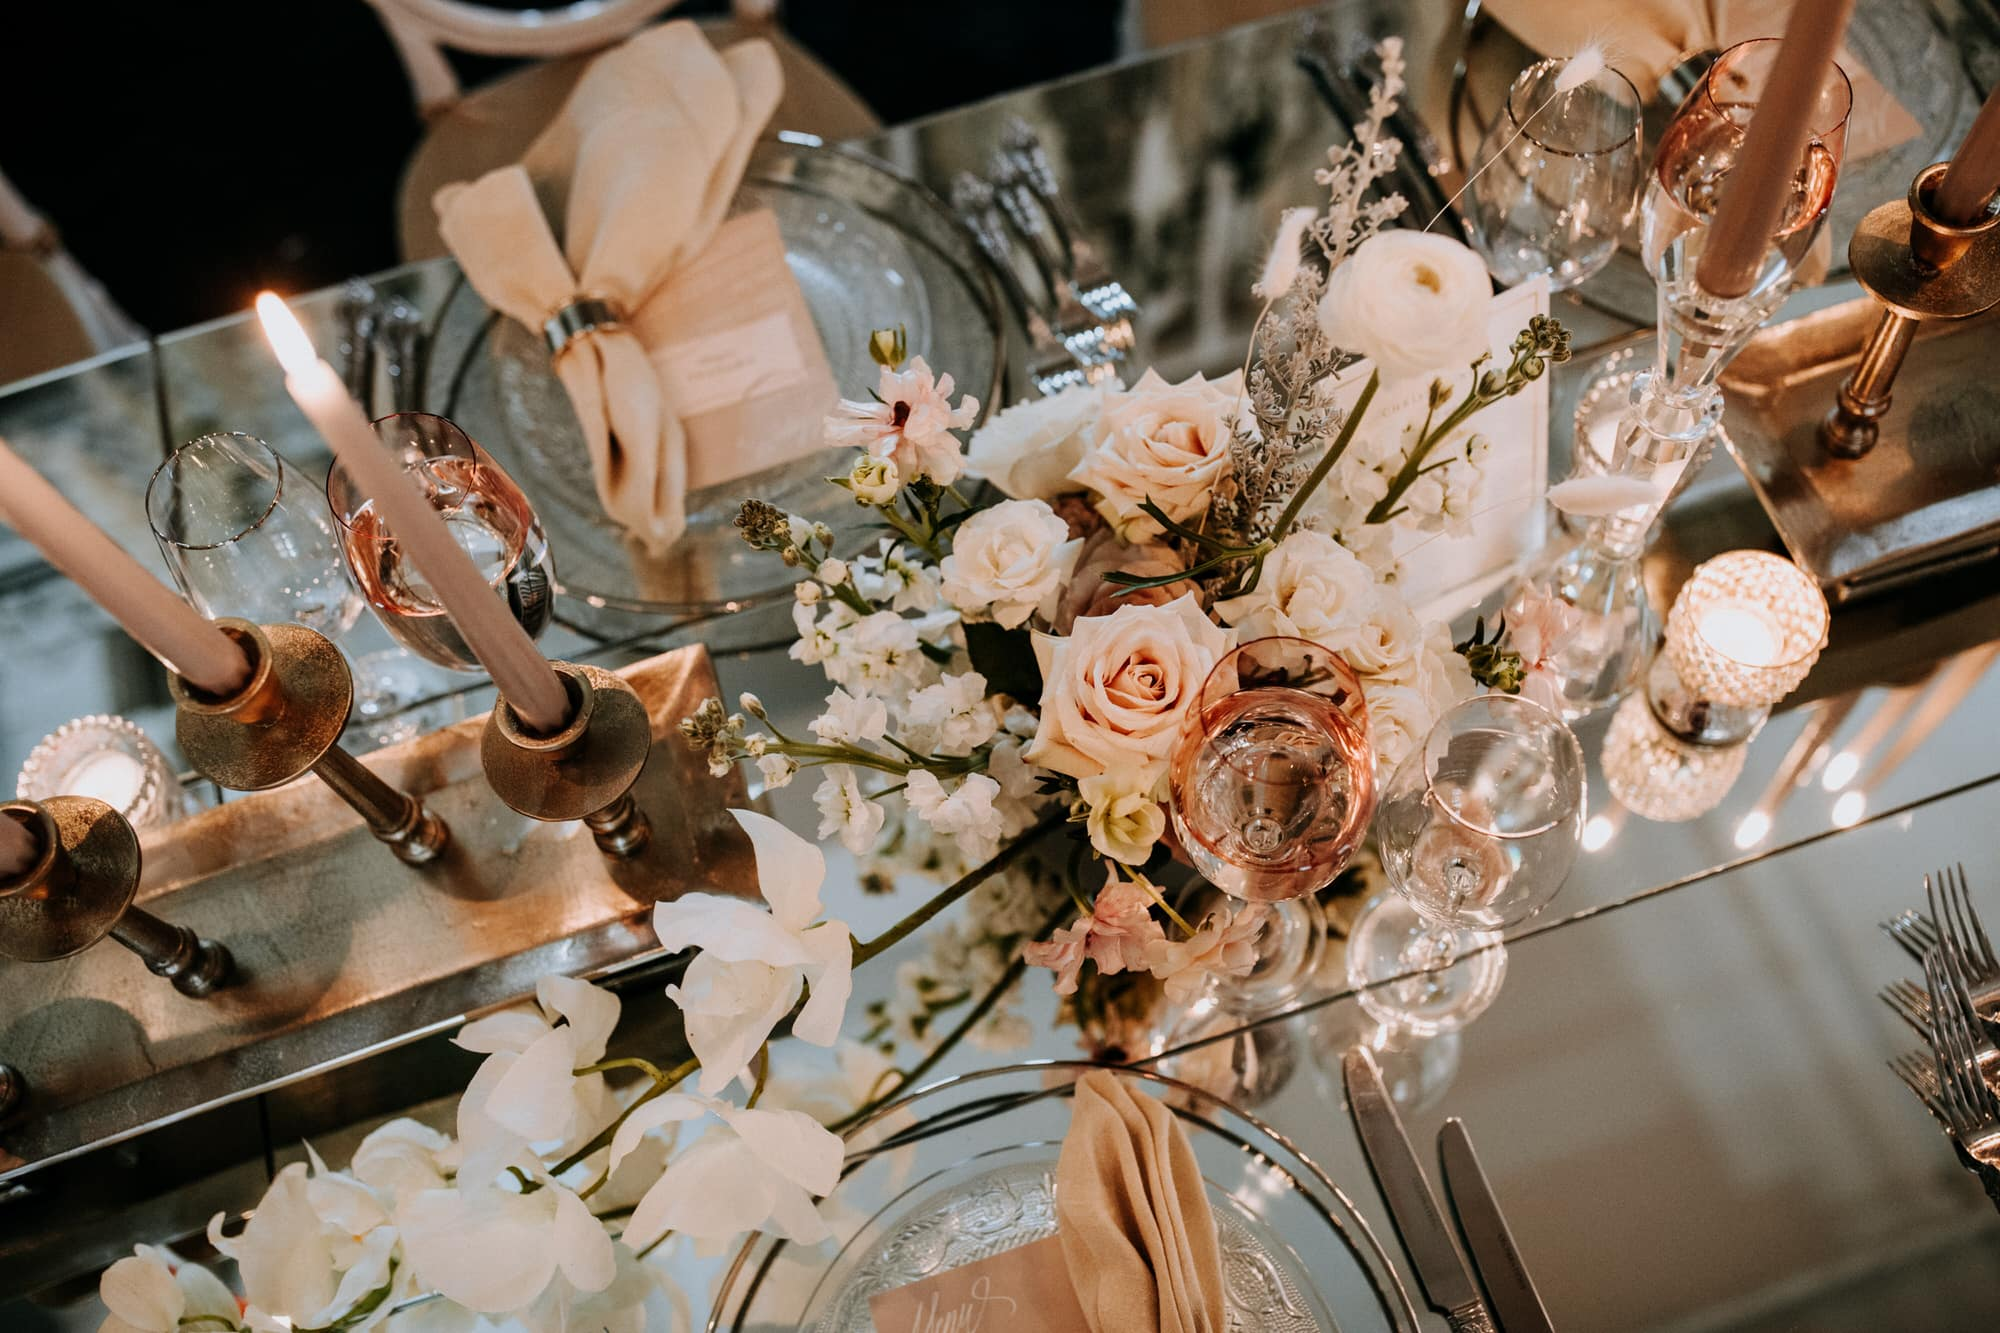 Entrepots Dominion Wedding In Montreal - Mirror table with peach decor - Wedding Photographer Brent Calis